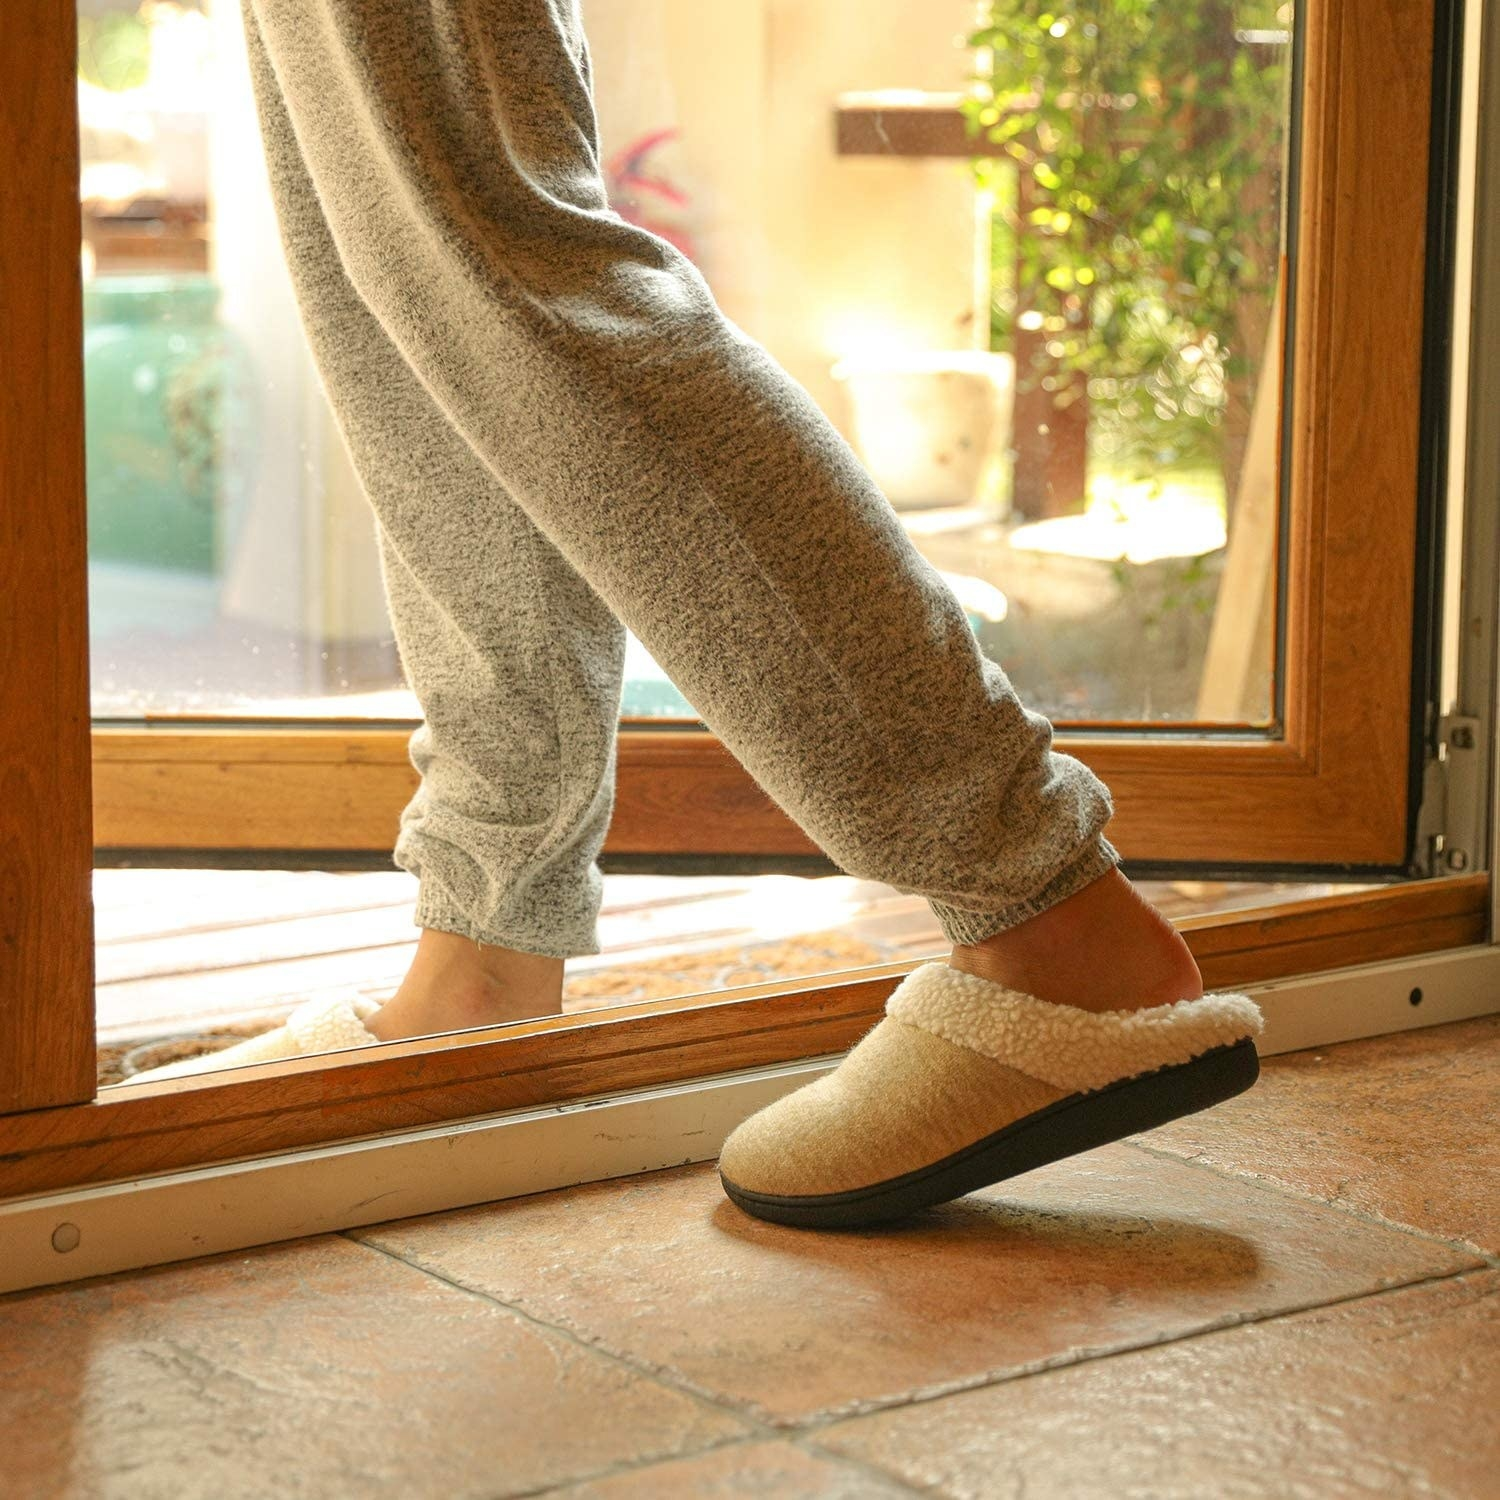 Slide-on slippers with fuzzy interior and thick sole suitable for outdoor use